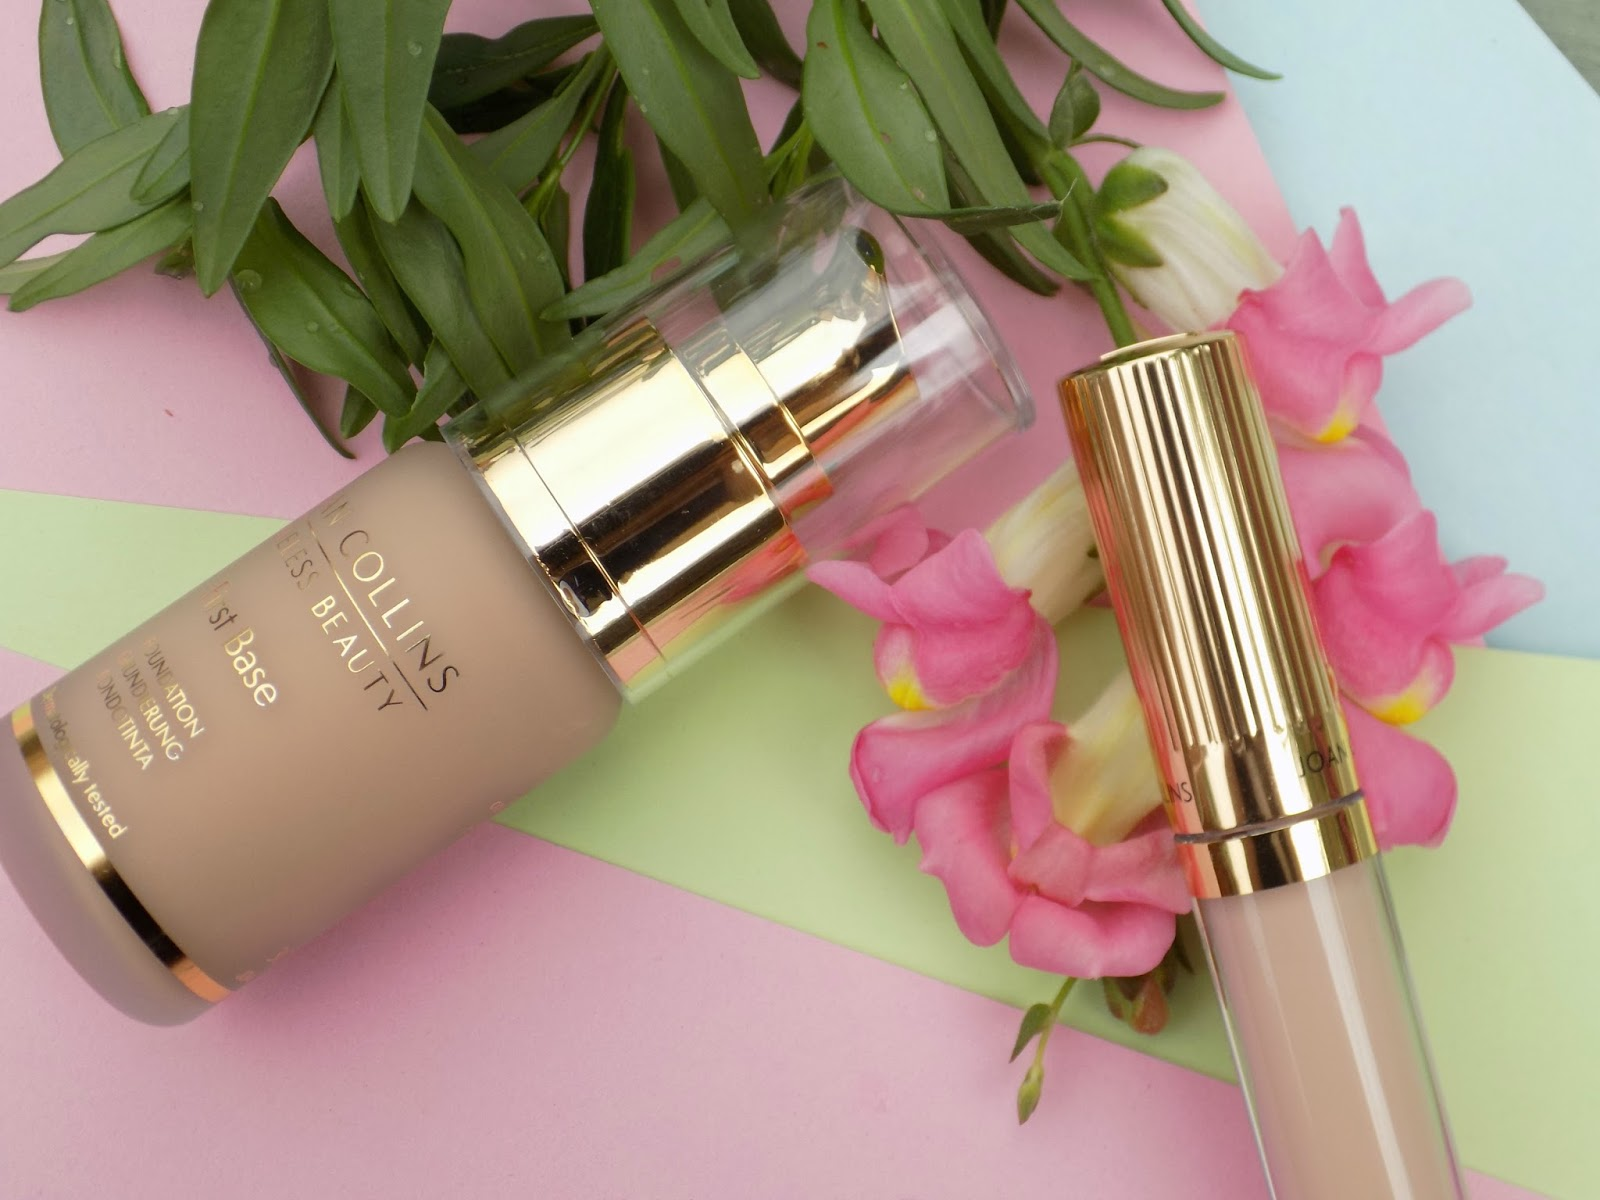 Joan Collins first base foundation and fade to perfect concealer